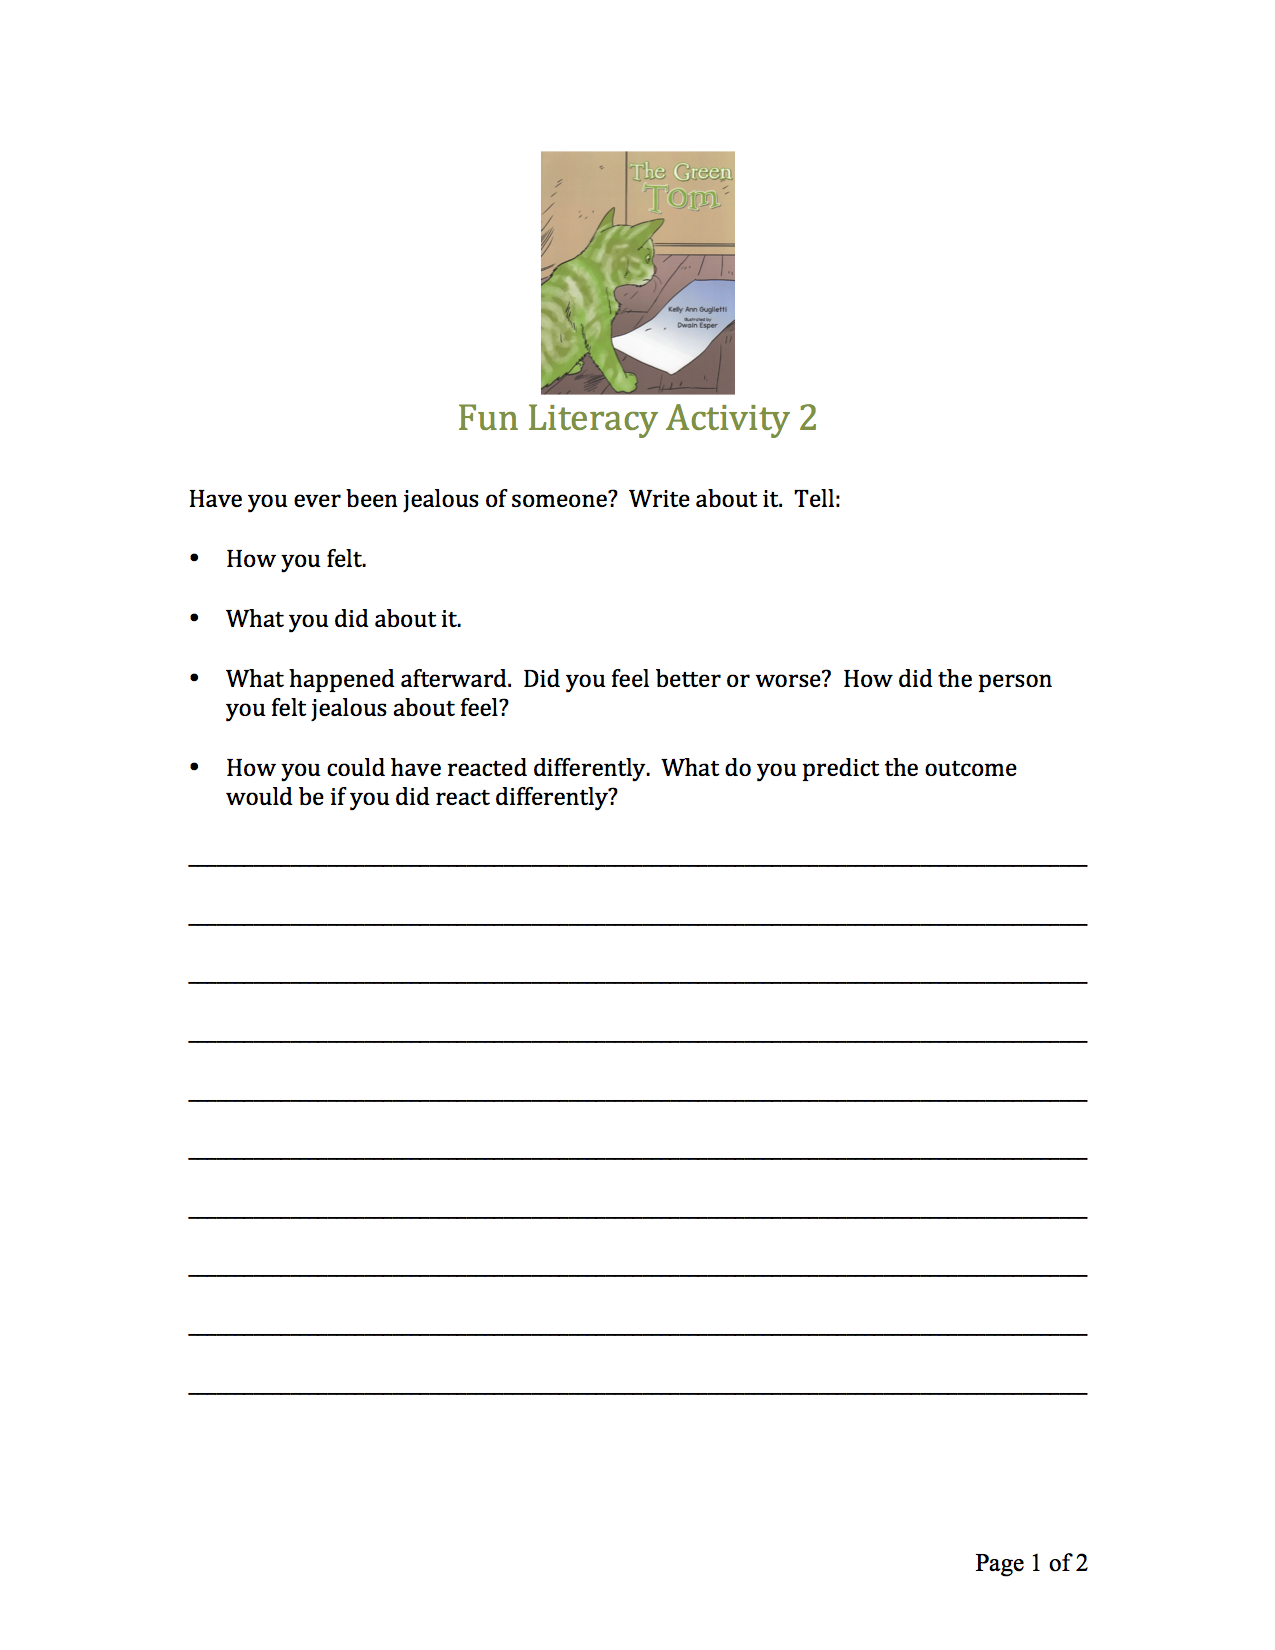 This Is A Great Worksheet To Help Students Explore A Time